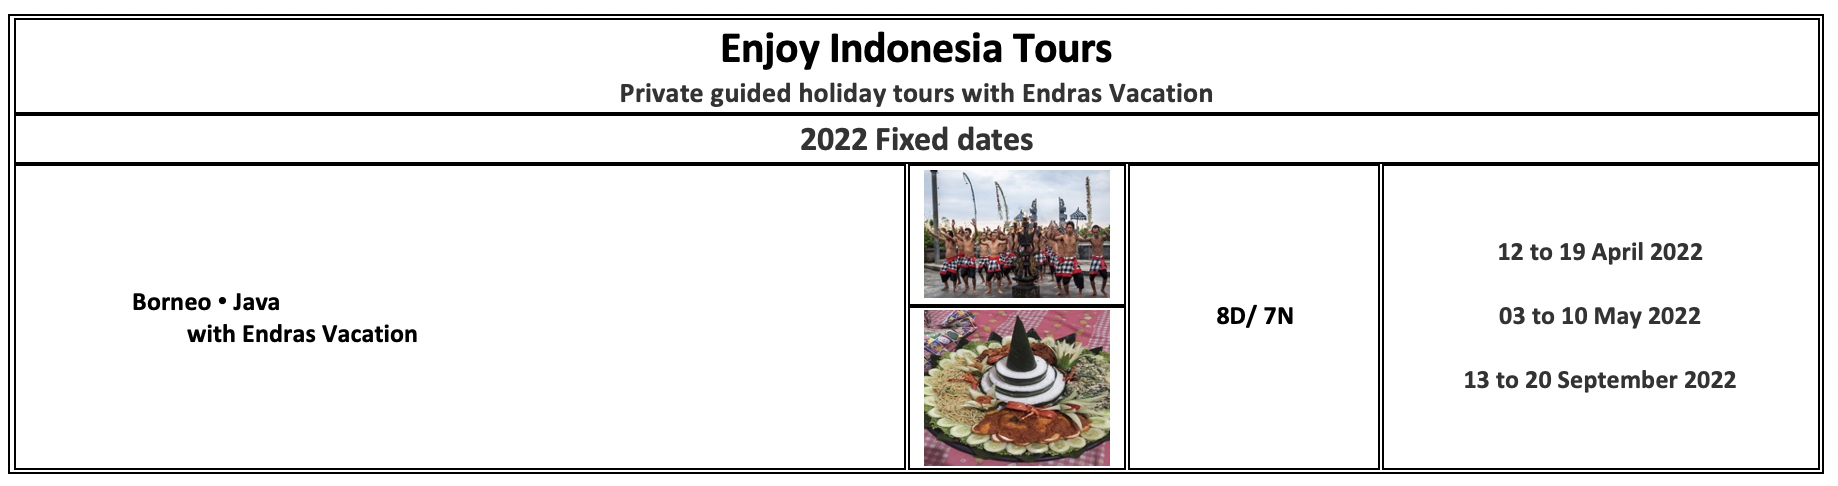 Enjoy Indonesia Tours 2022 Endras Vacation